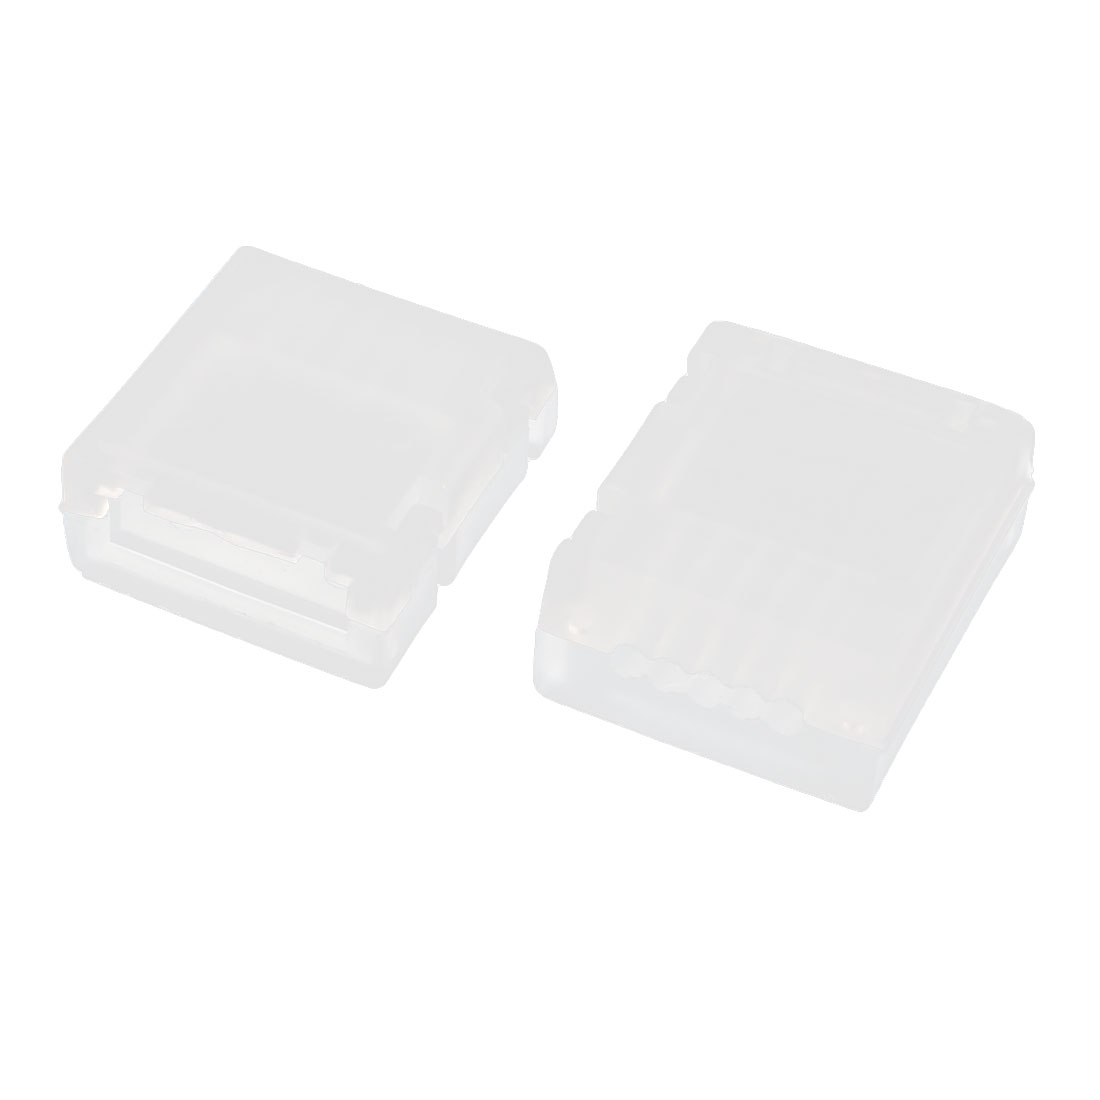 2Pcs 14.8V 4S RC Lipo Battery White Plastic Balance Charge Protector Guard AB Clip Buckle Button